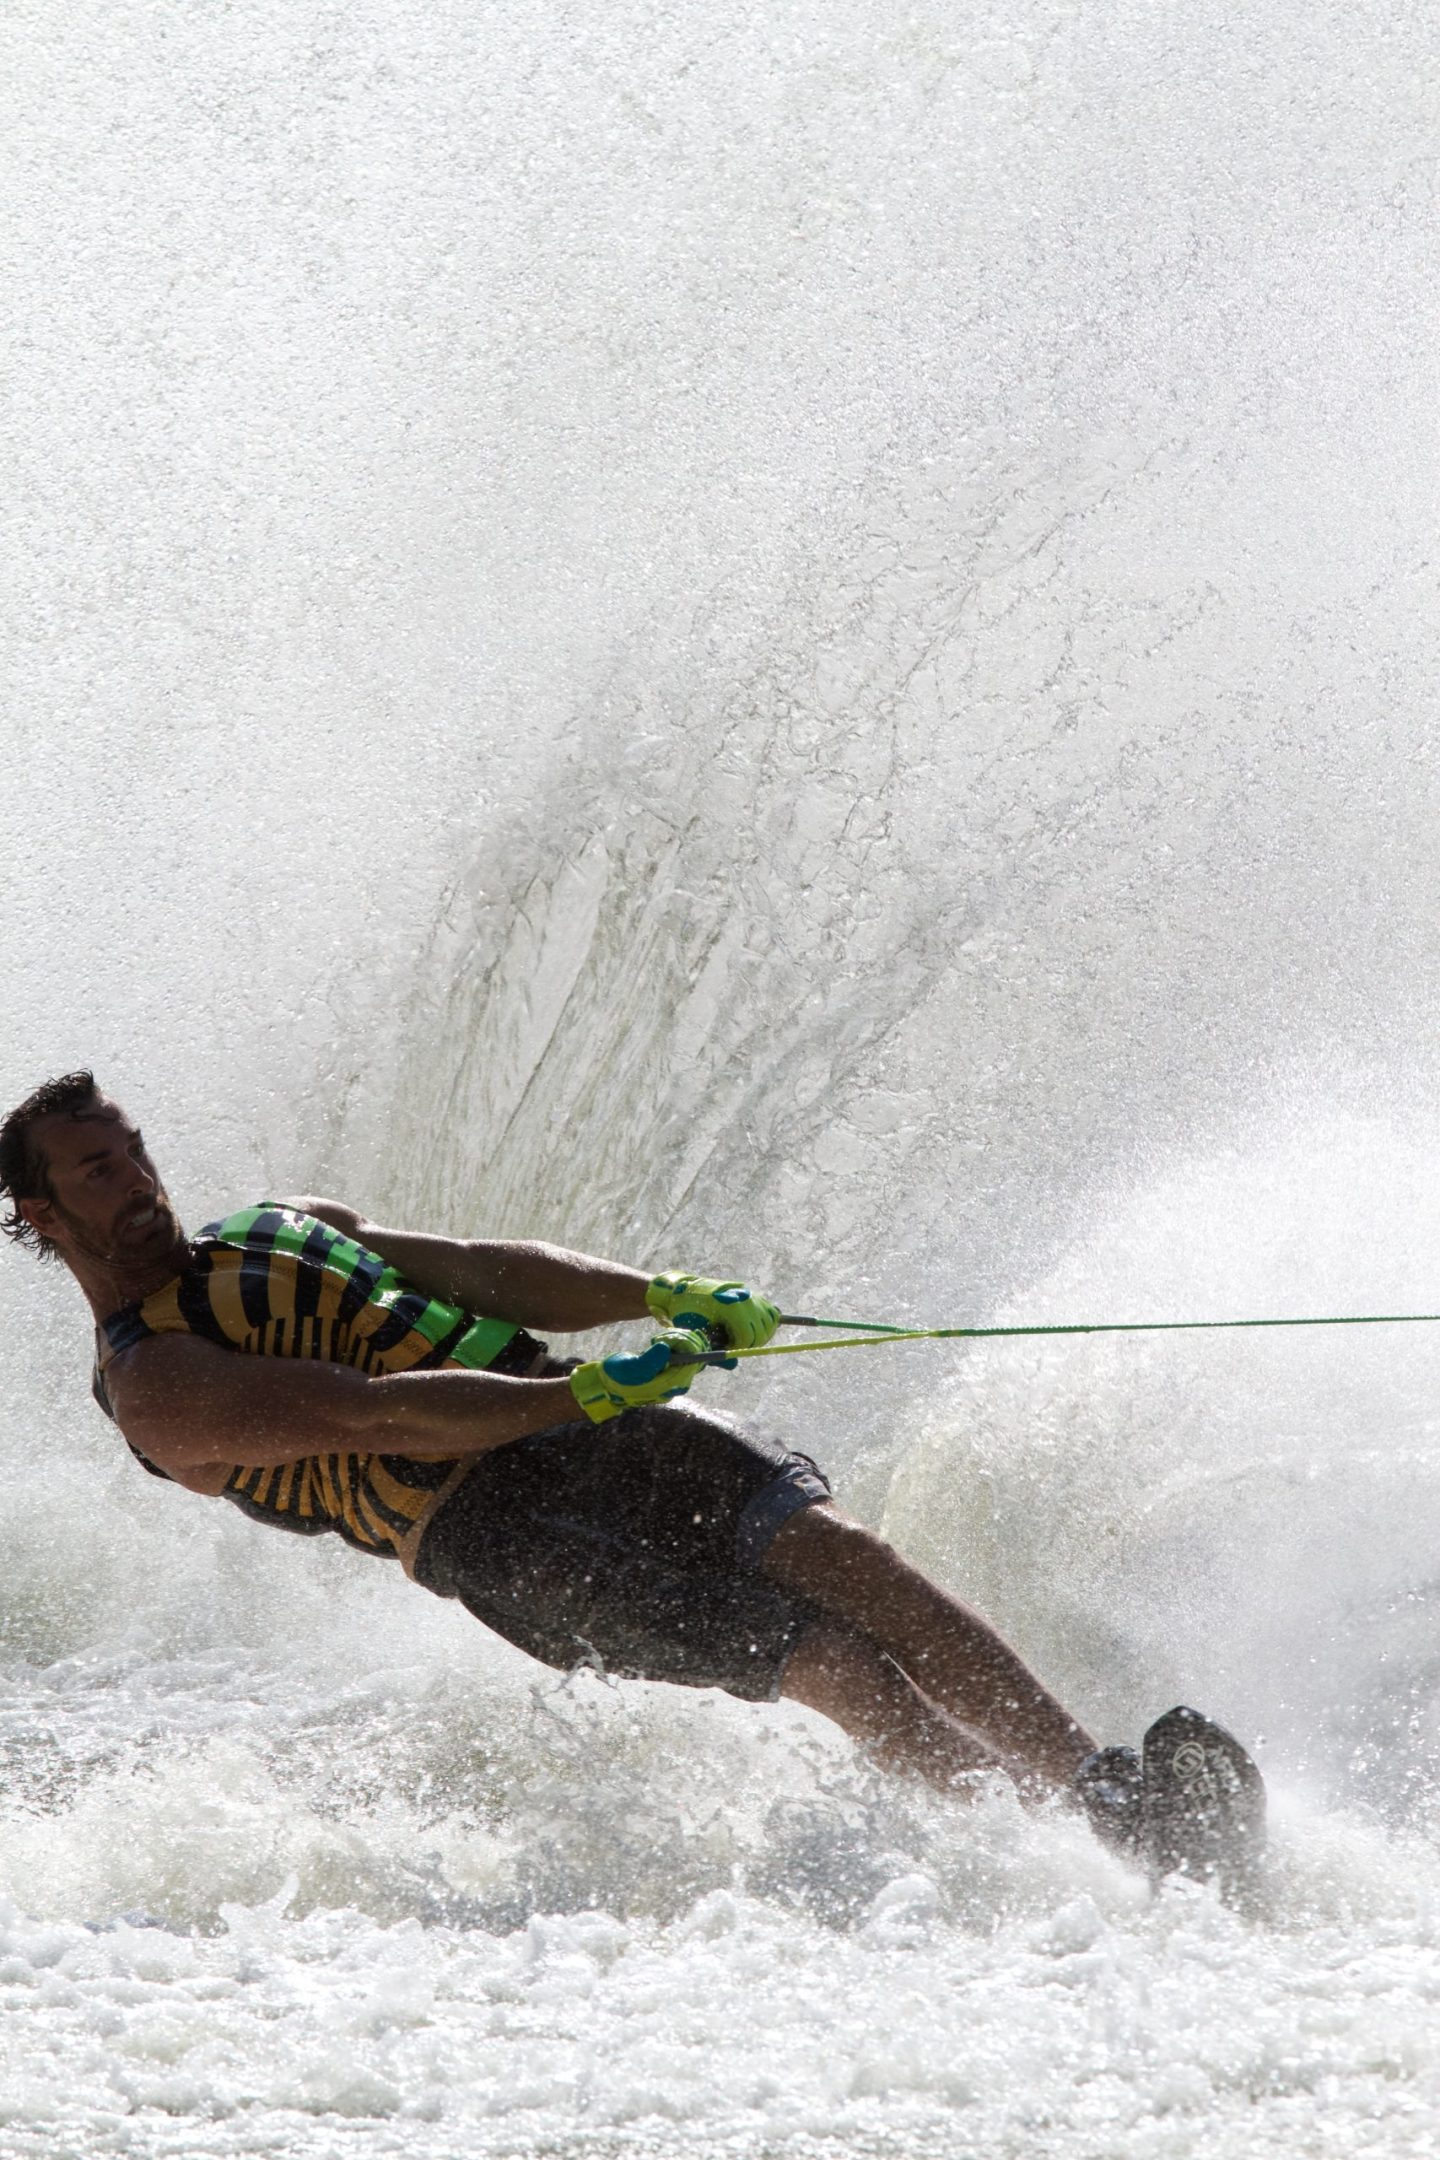 Person waterskiing